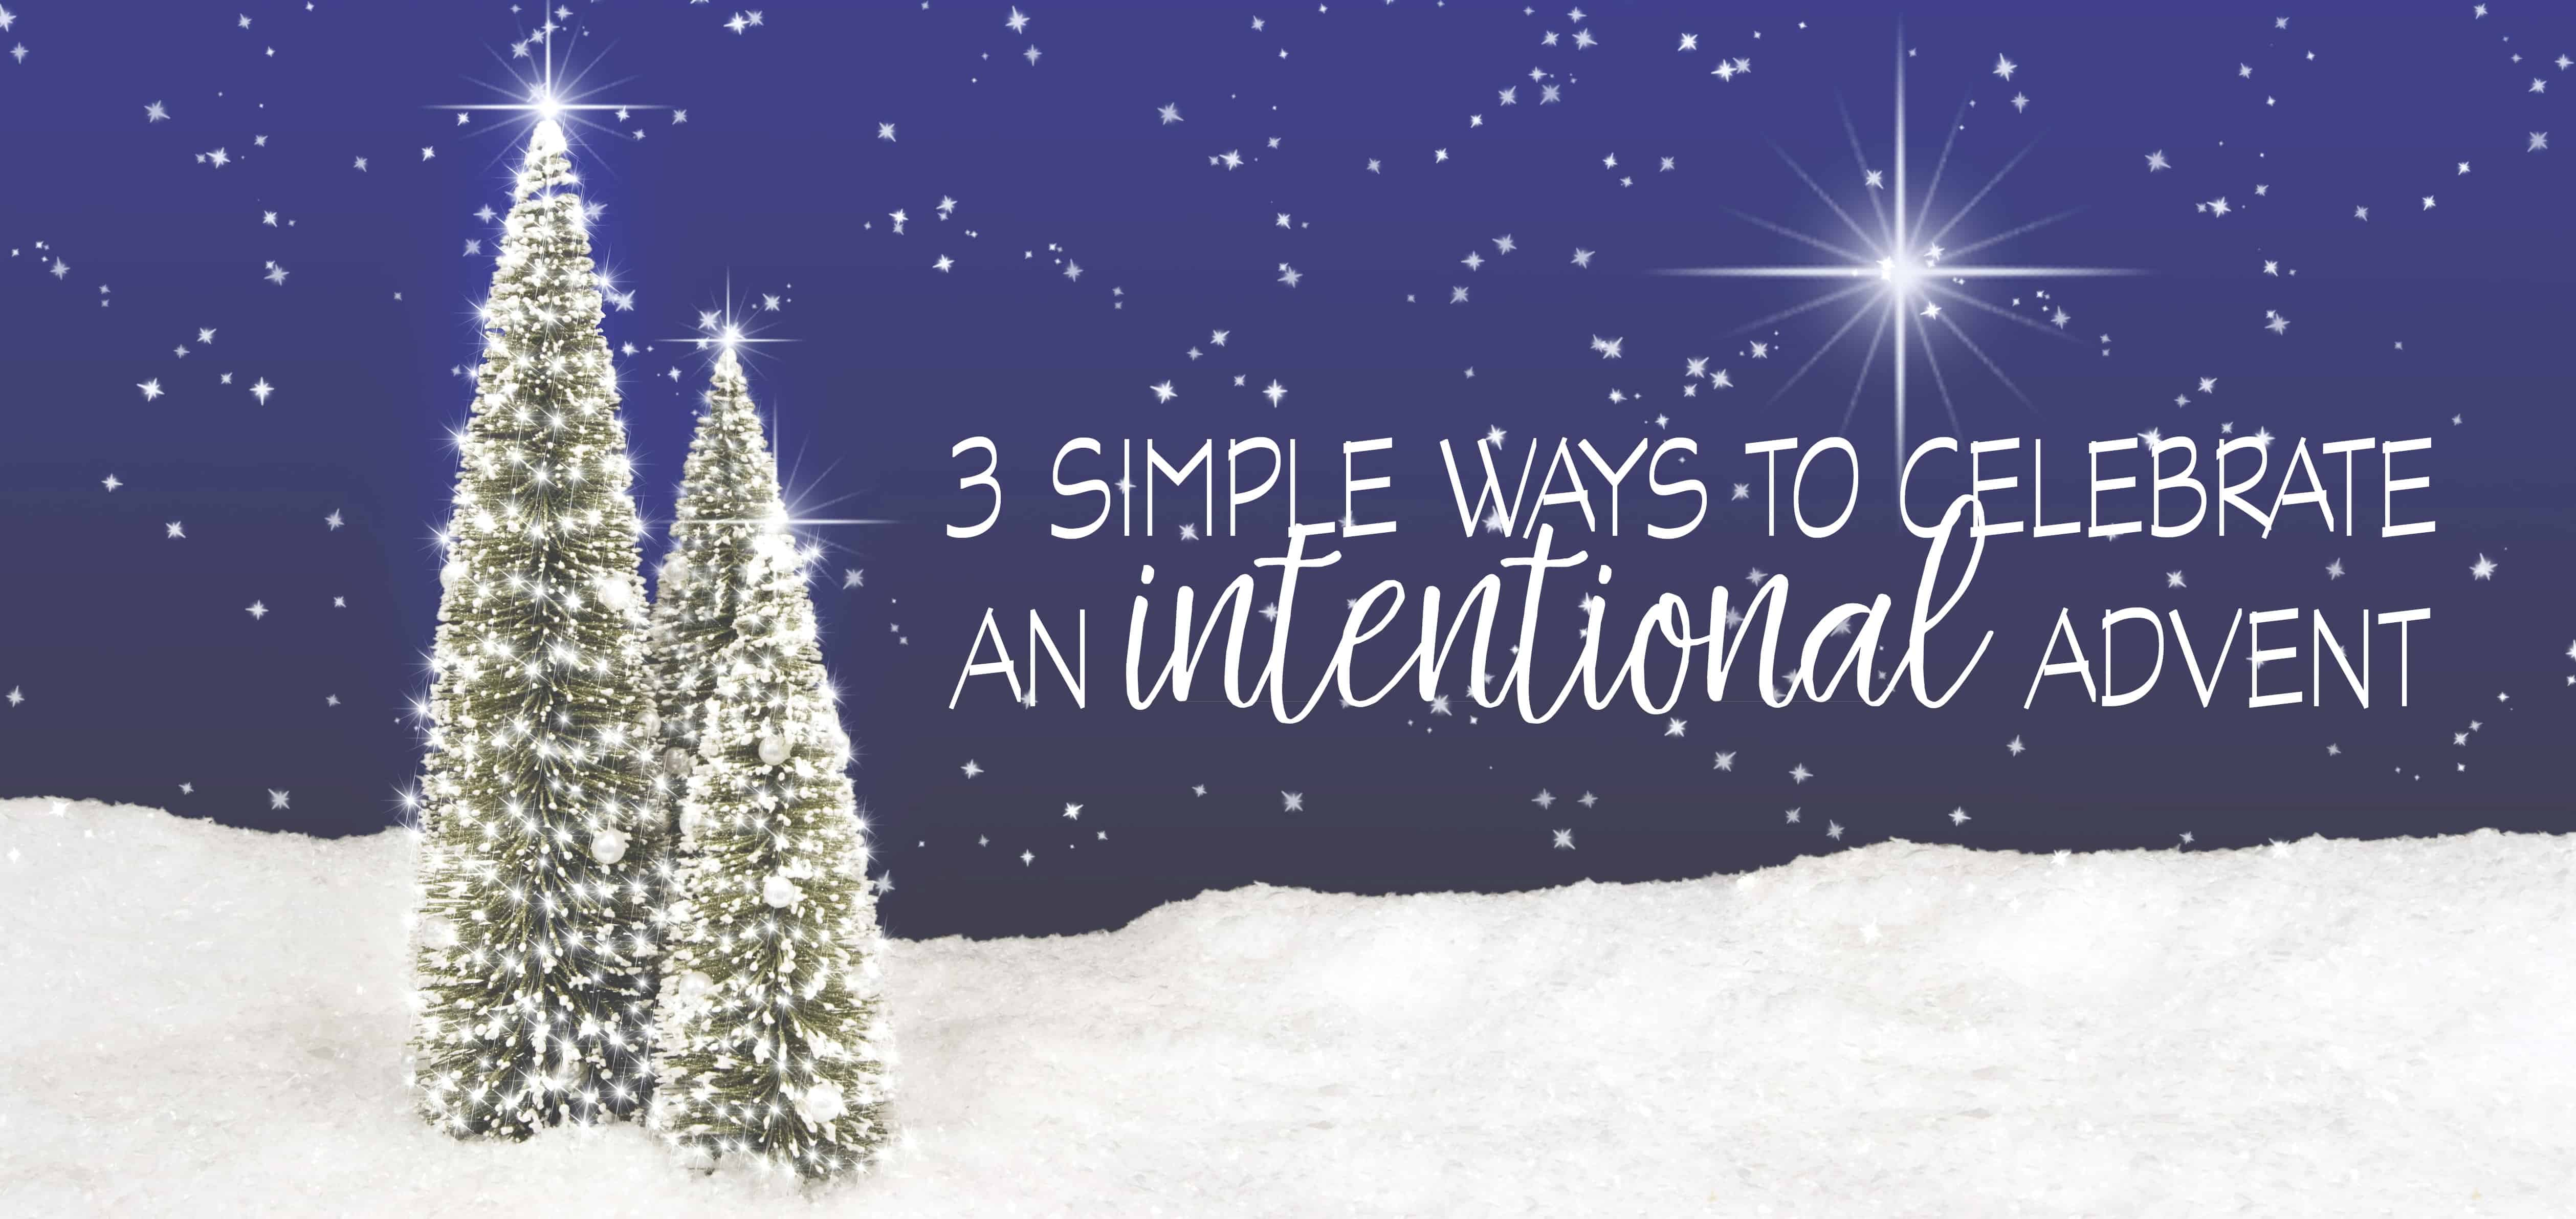 An Intentional Advent